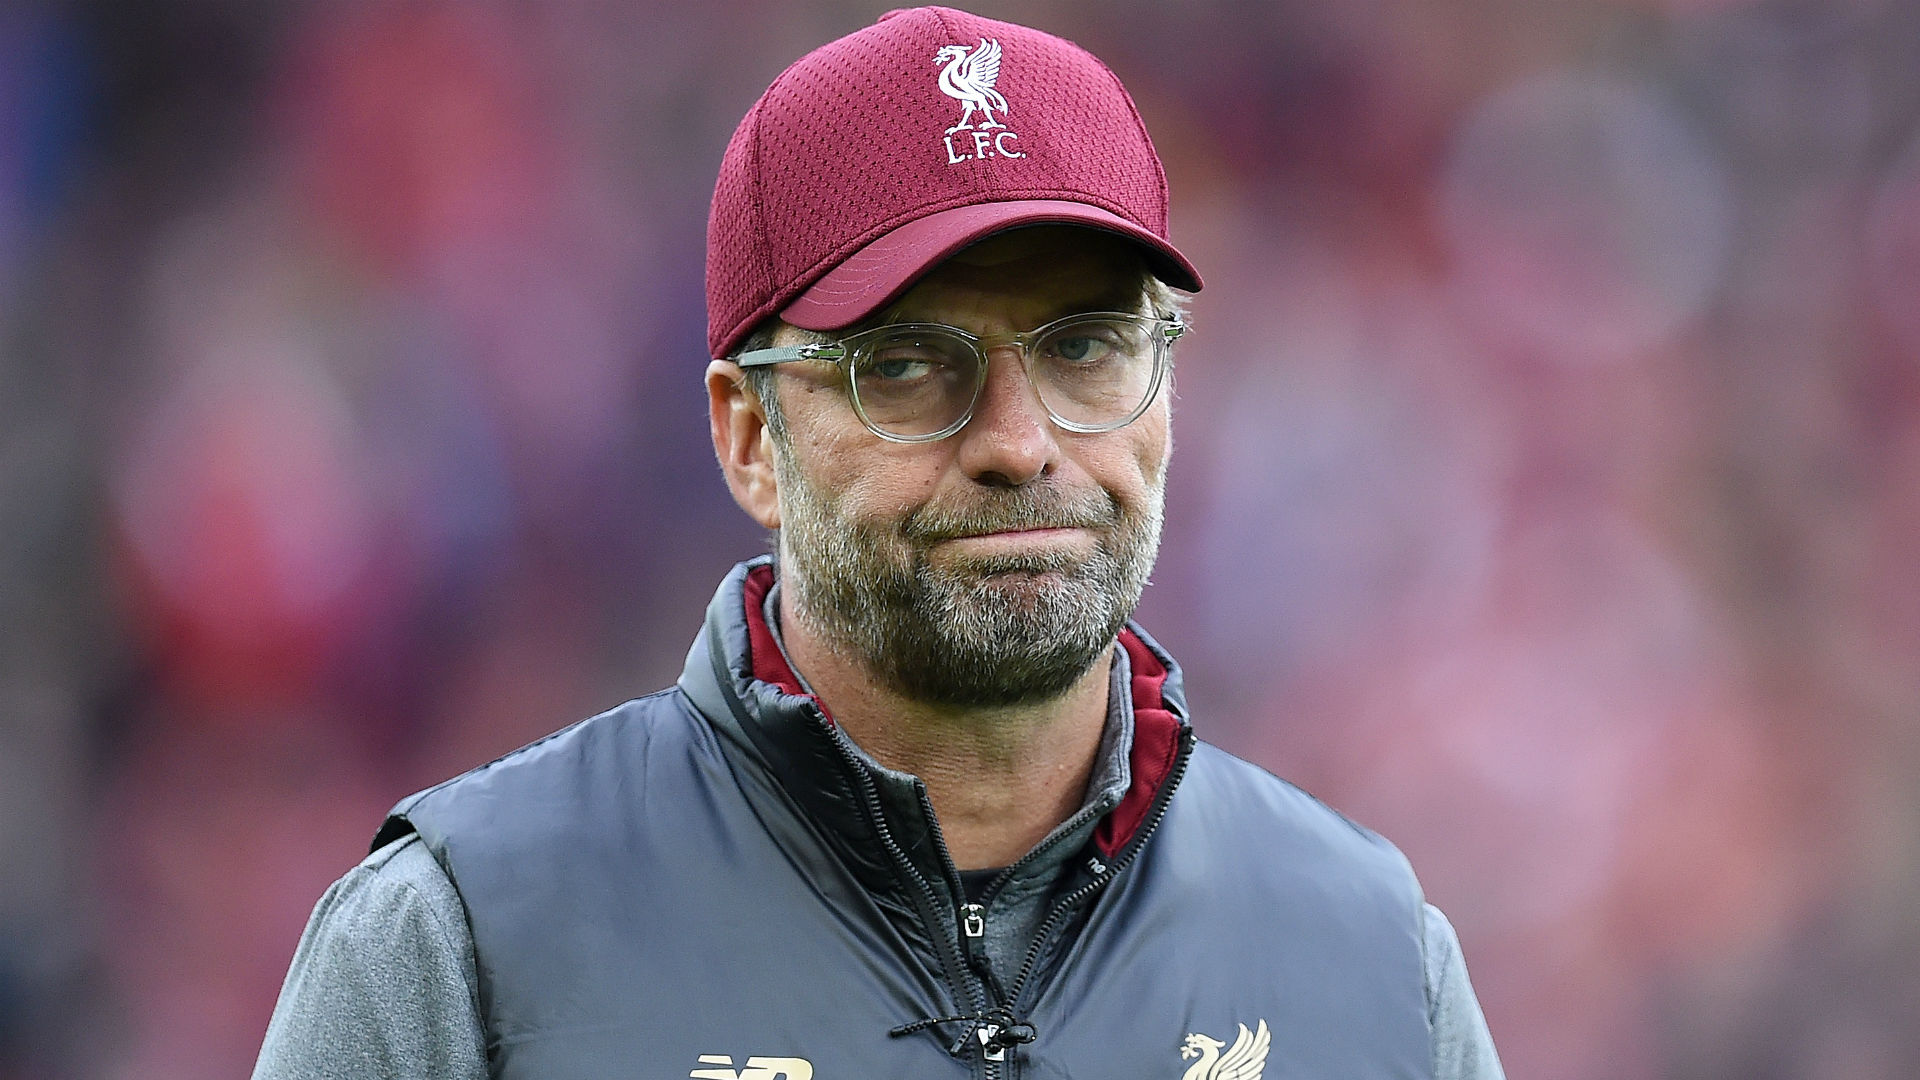 Liverpool boss Klopp: Arsenal are title contenders